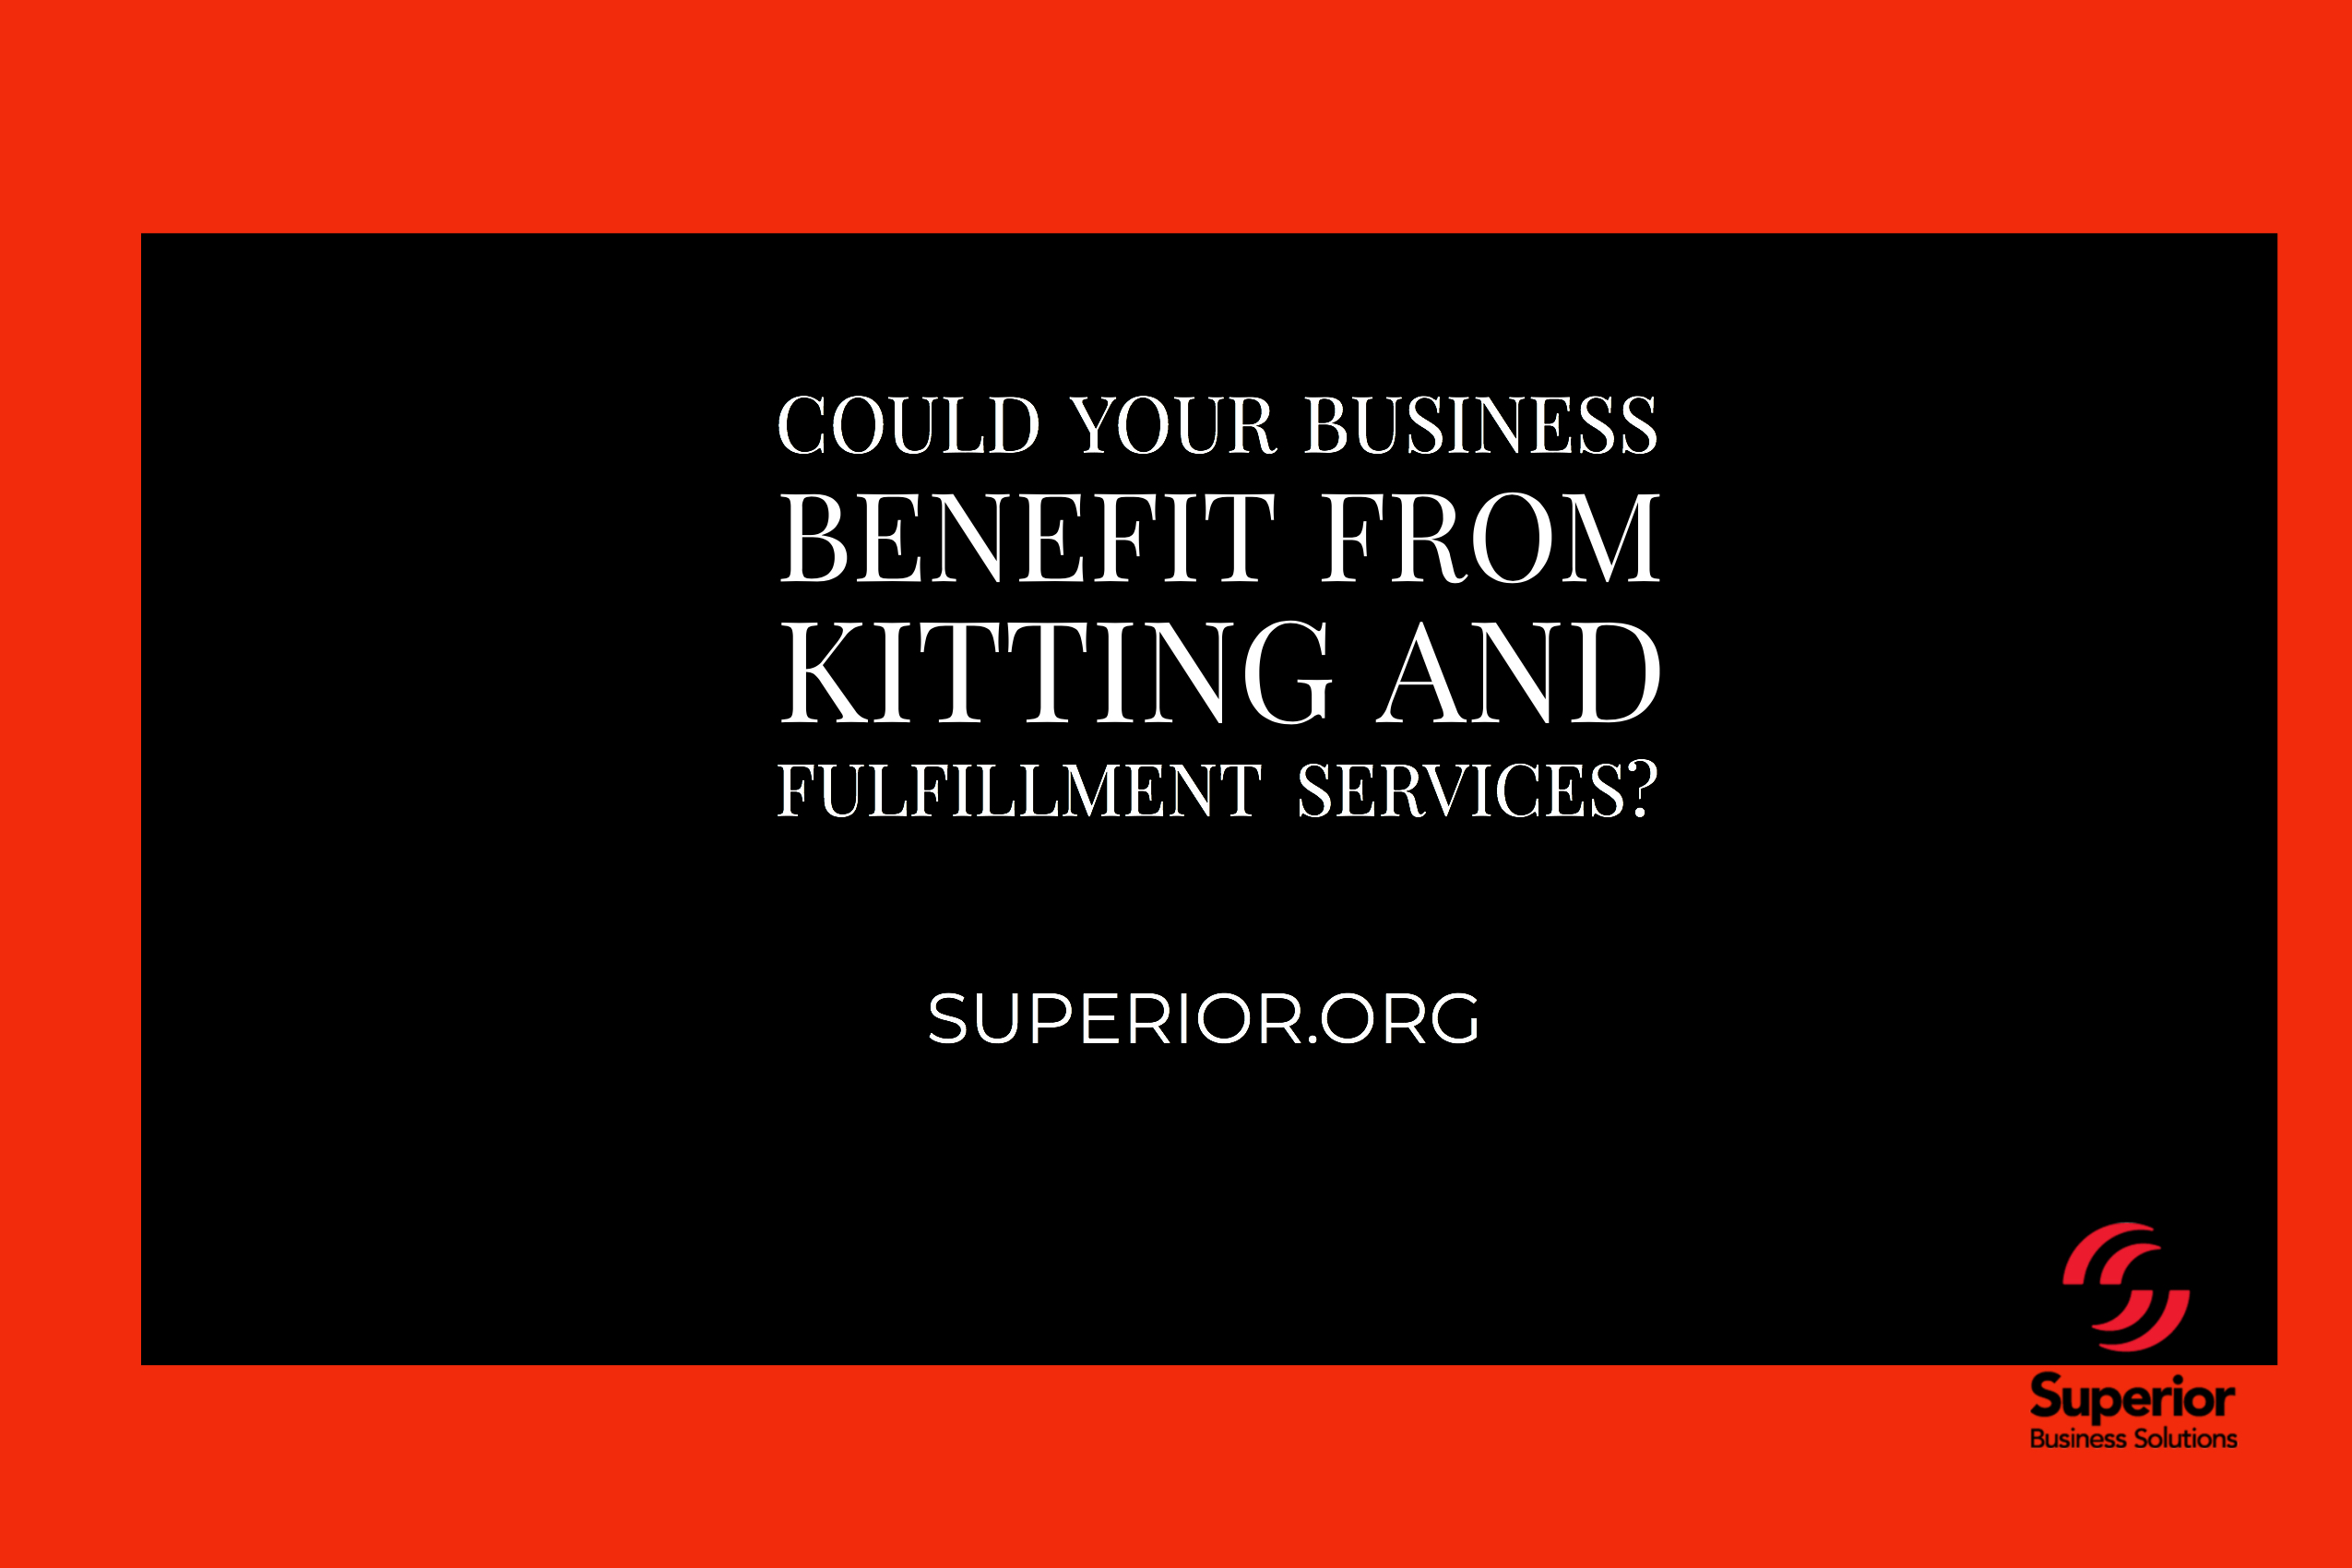 Could Your Business Benefit from Kitting and Fulfillment Services?